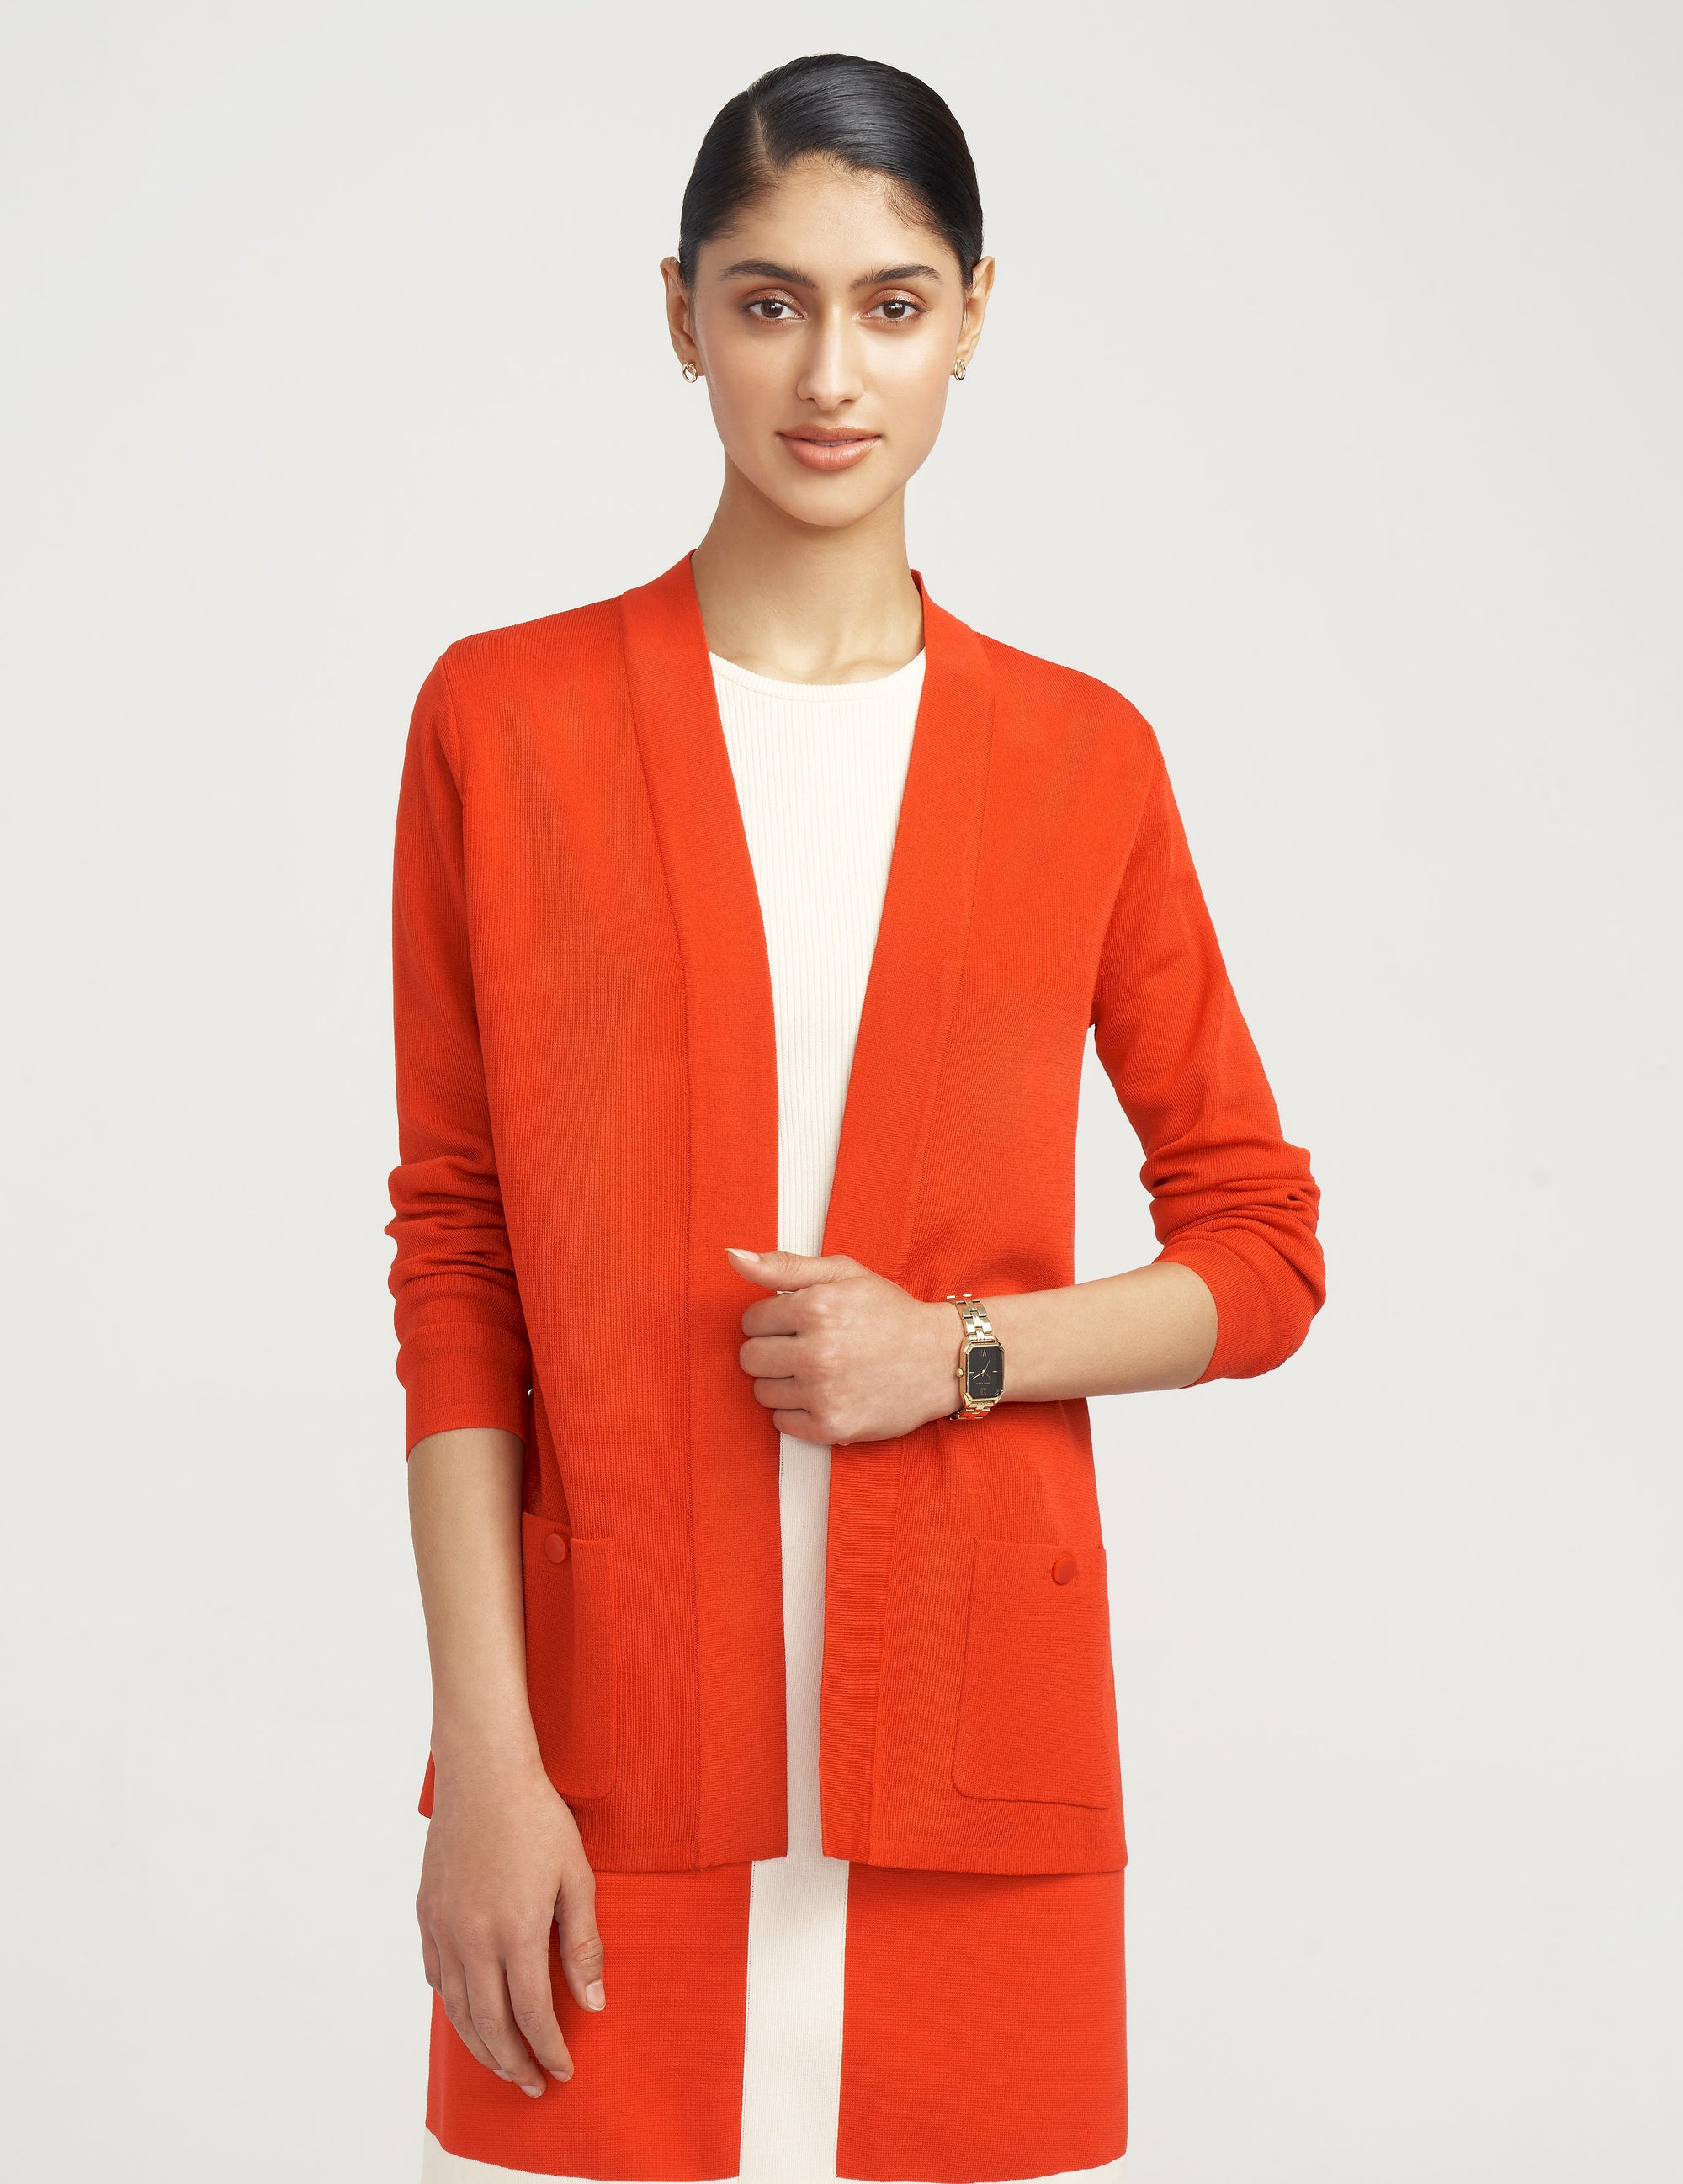 Anne Klein Two Pocket Malibu Cardigan in Poppy